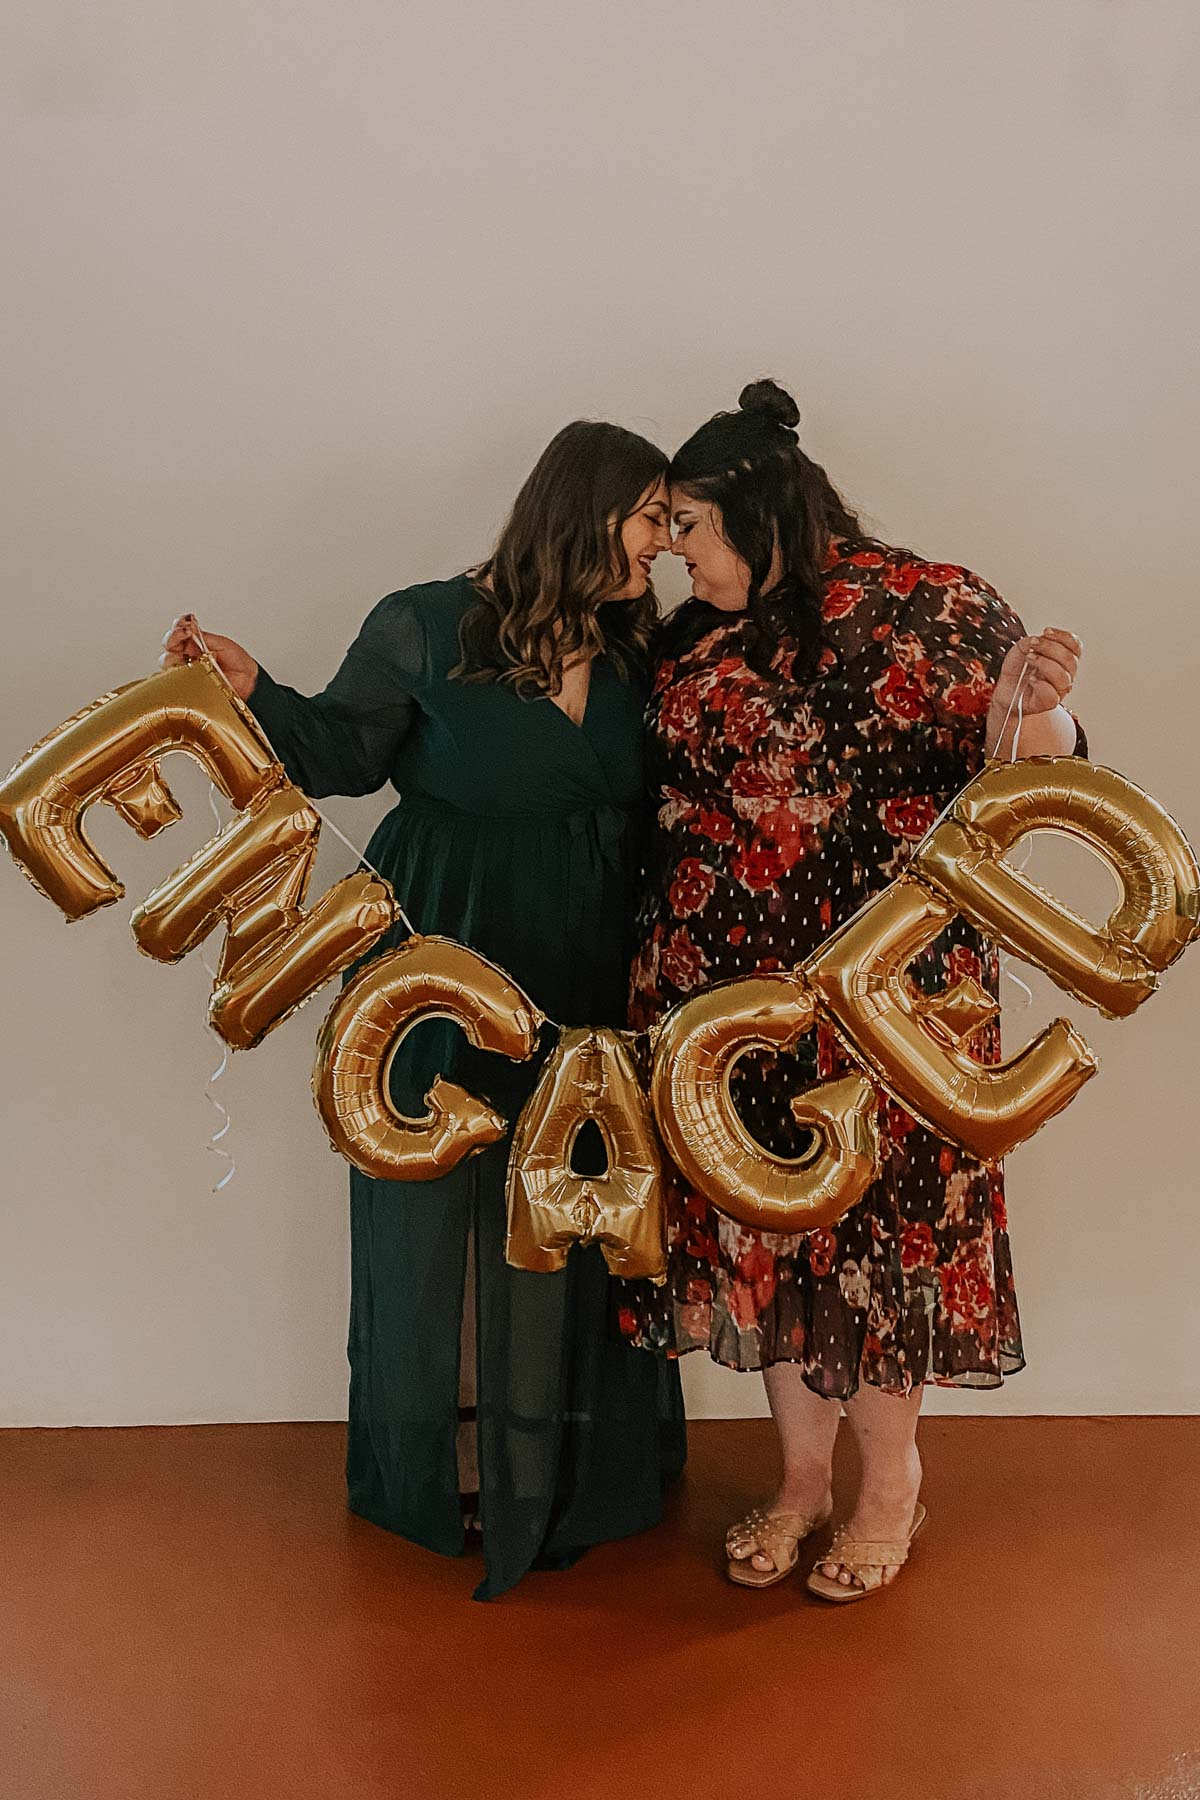 Plus size queer couple Ashley and Malori lesbian song proposal